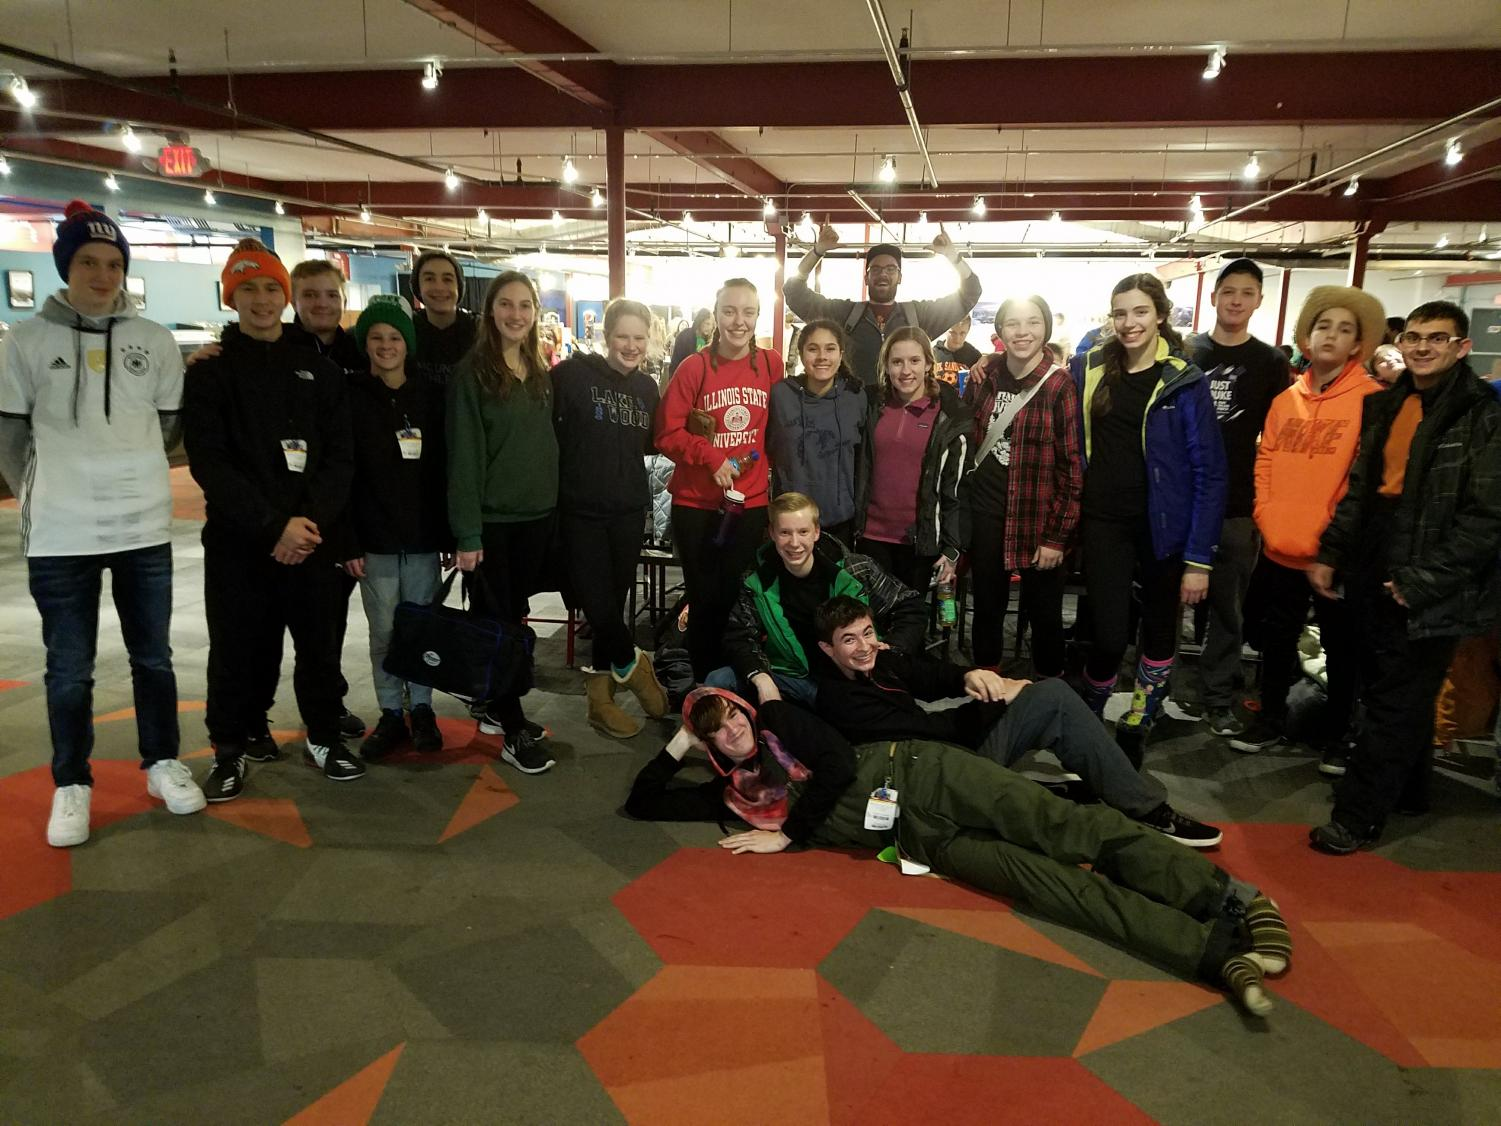 Participants unite together for a group photo after a long day of skiing on Jan. 26.